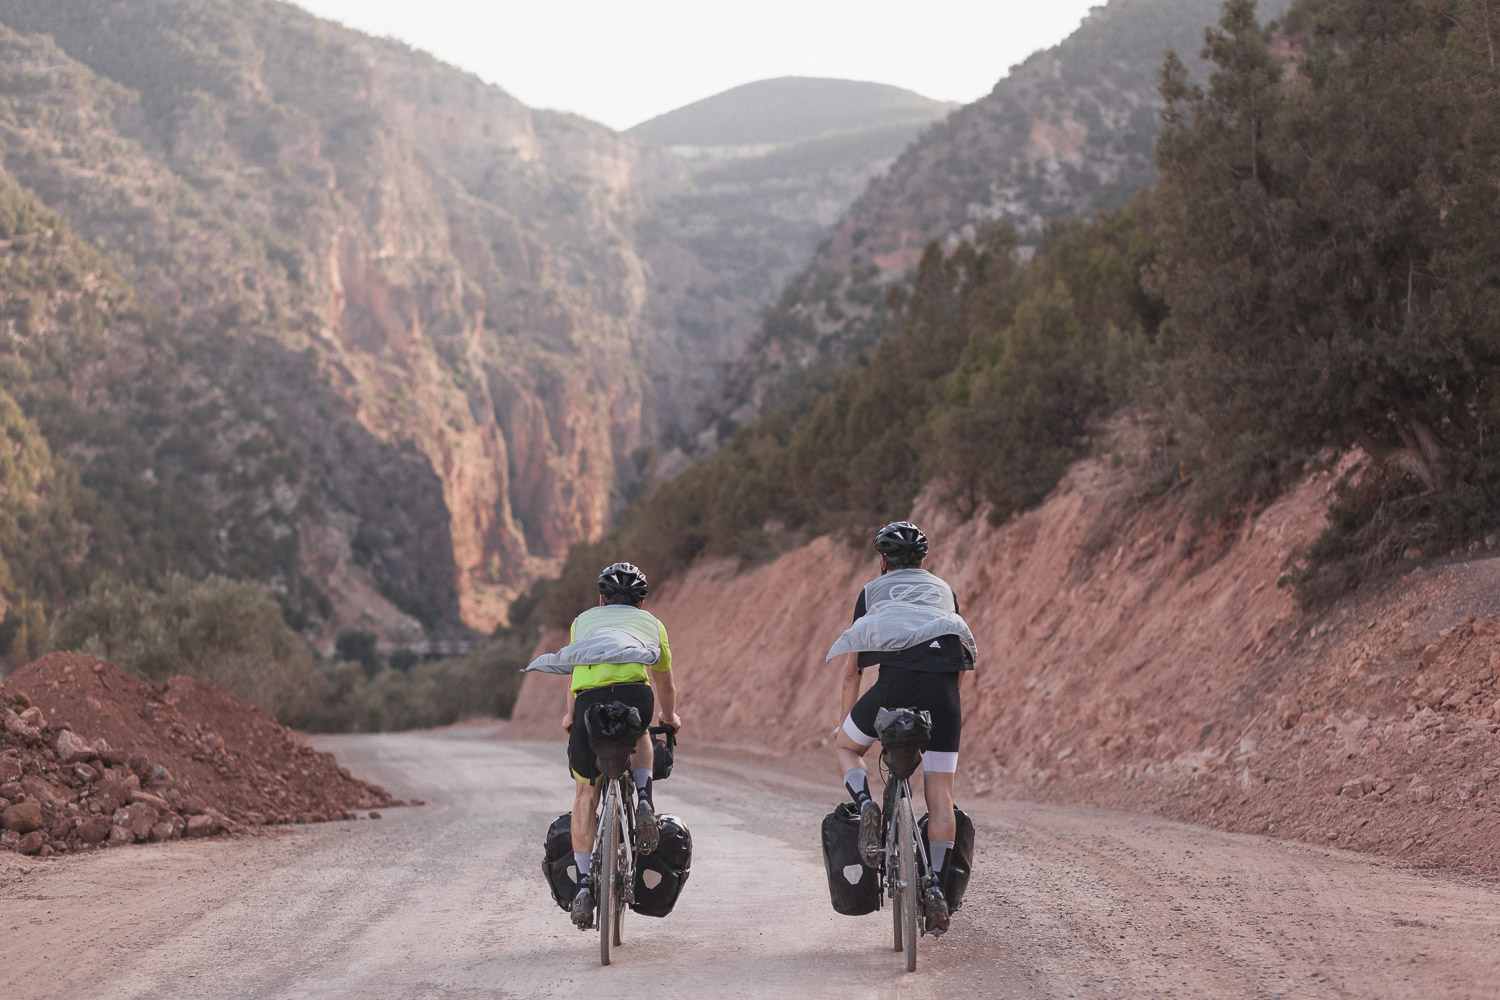 8bar bikes adventures morocco gravel 20151215 0067 bearbeitet - 8bar Adventures - Morocco - High Atlas - Part 2/2